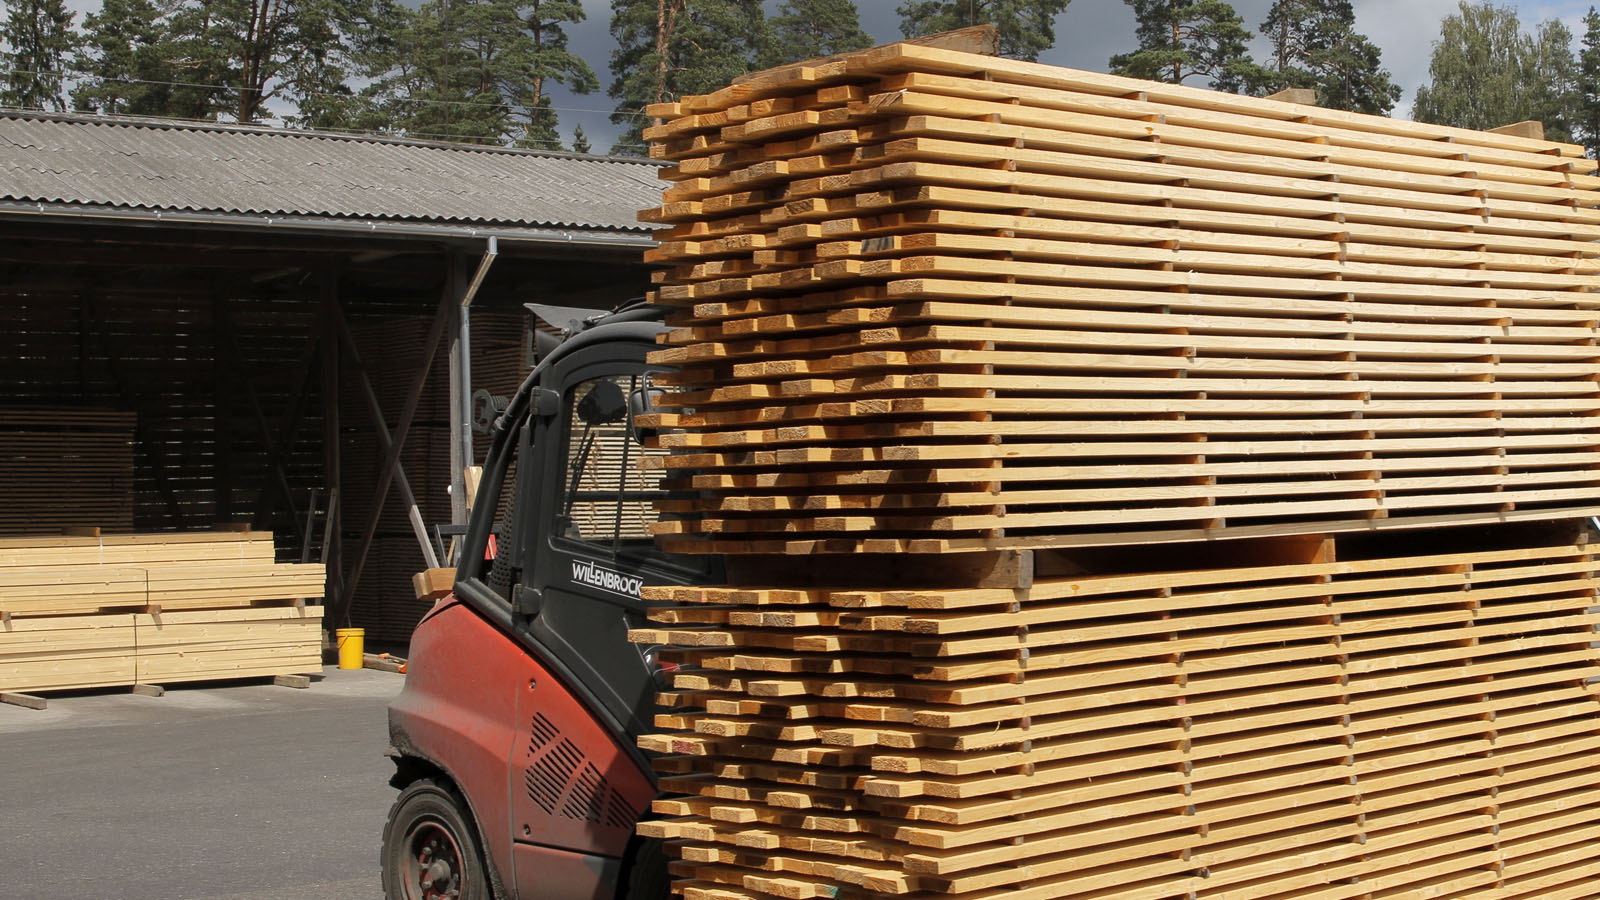 4-sawn-timber-blanks-nothern-europe-timber-production-lameko-impex